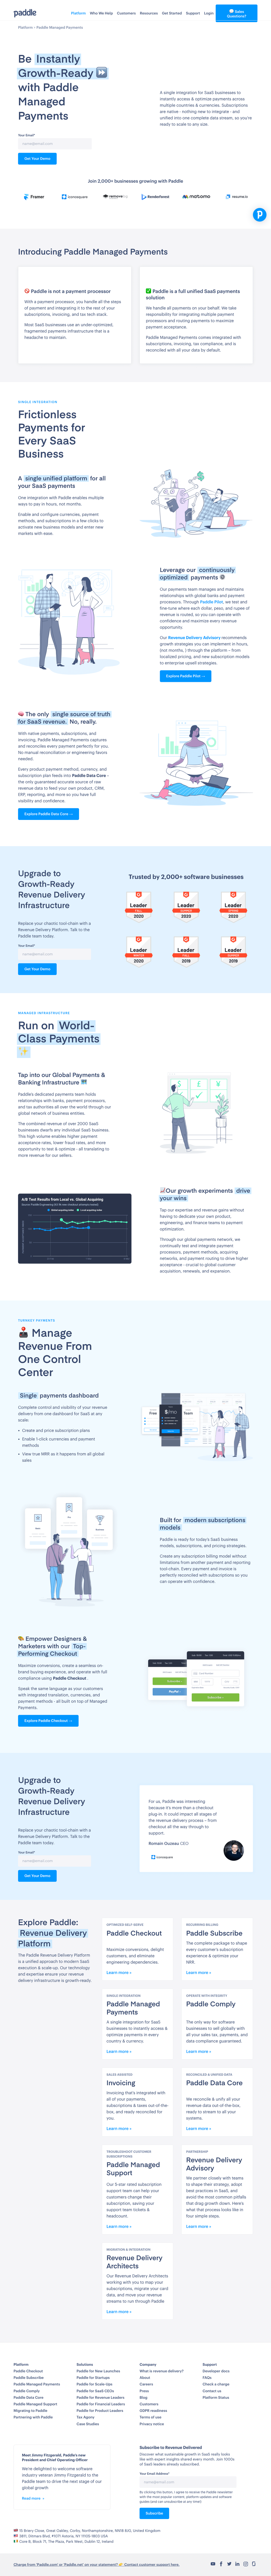 Paddle – Features page